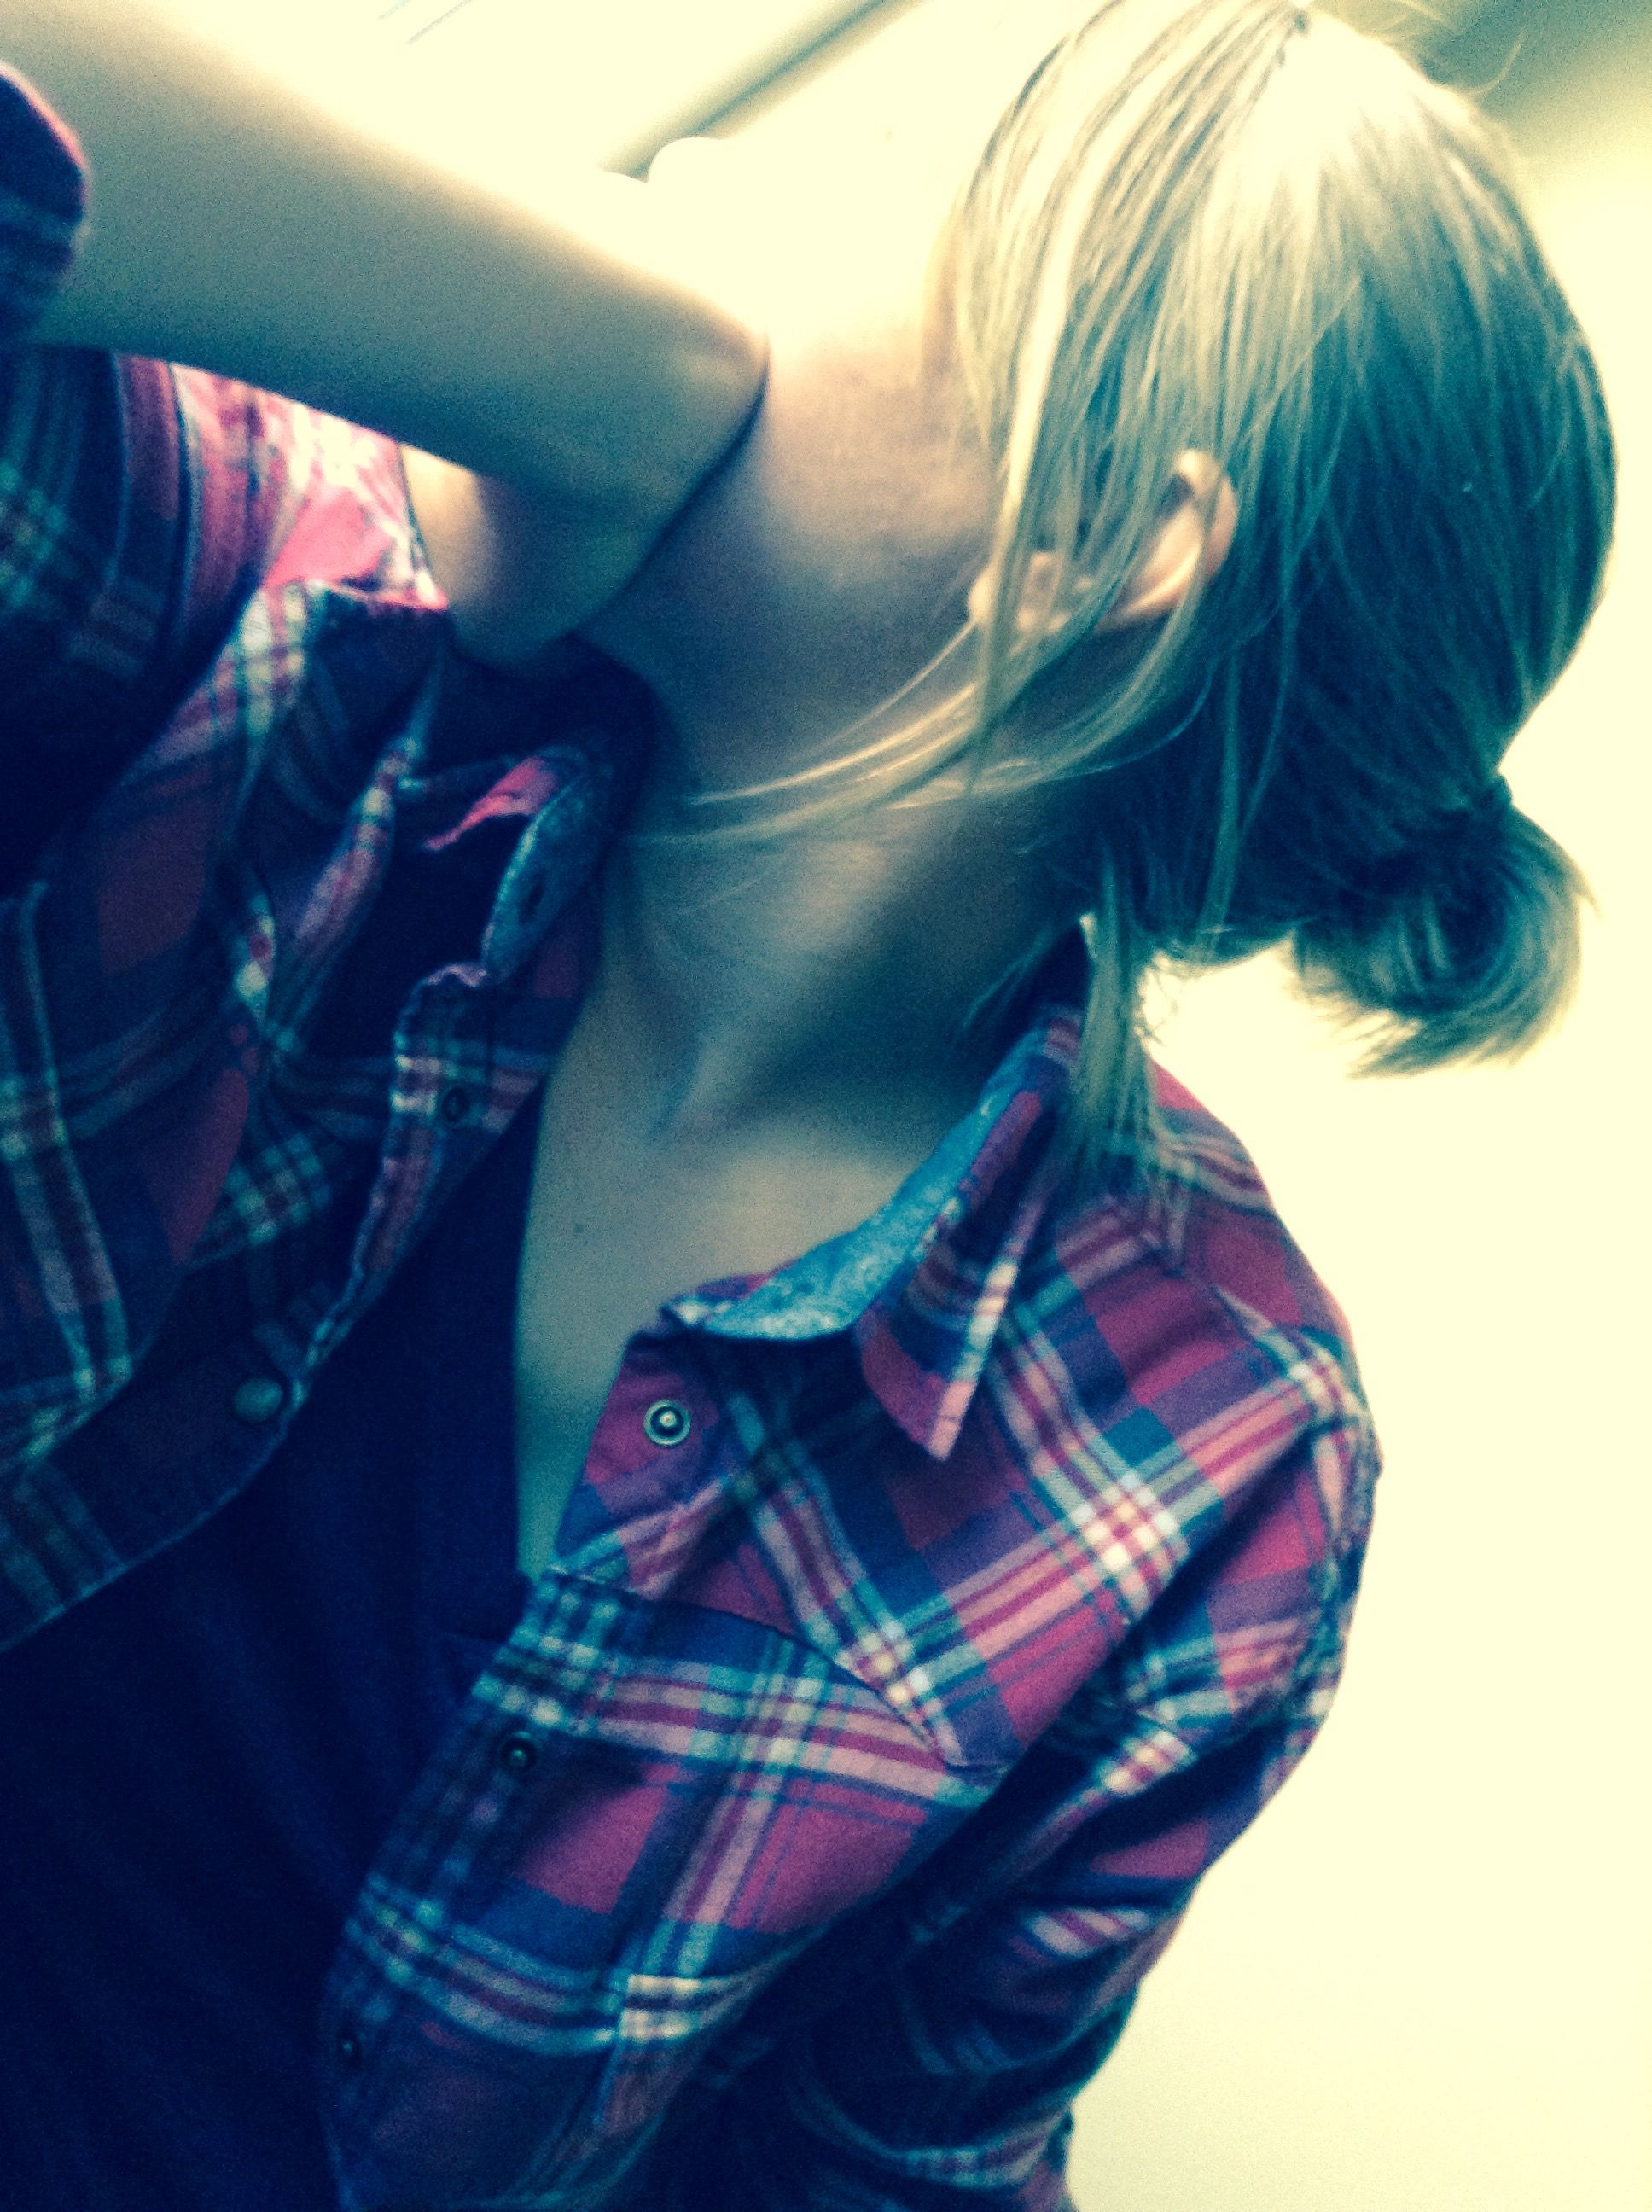 Messy hair and a Flannel